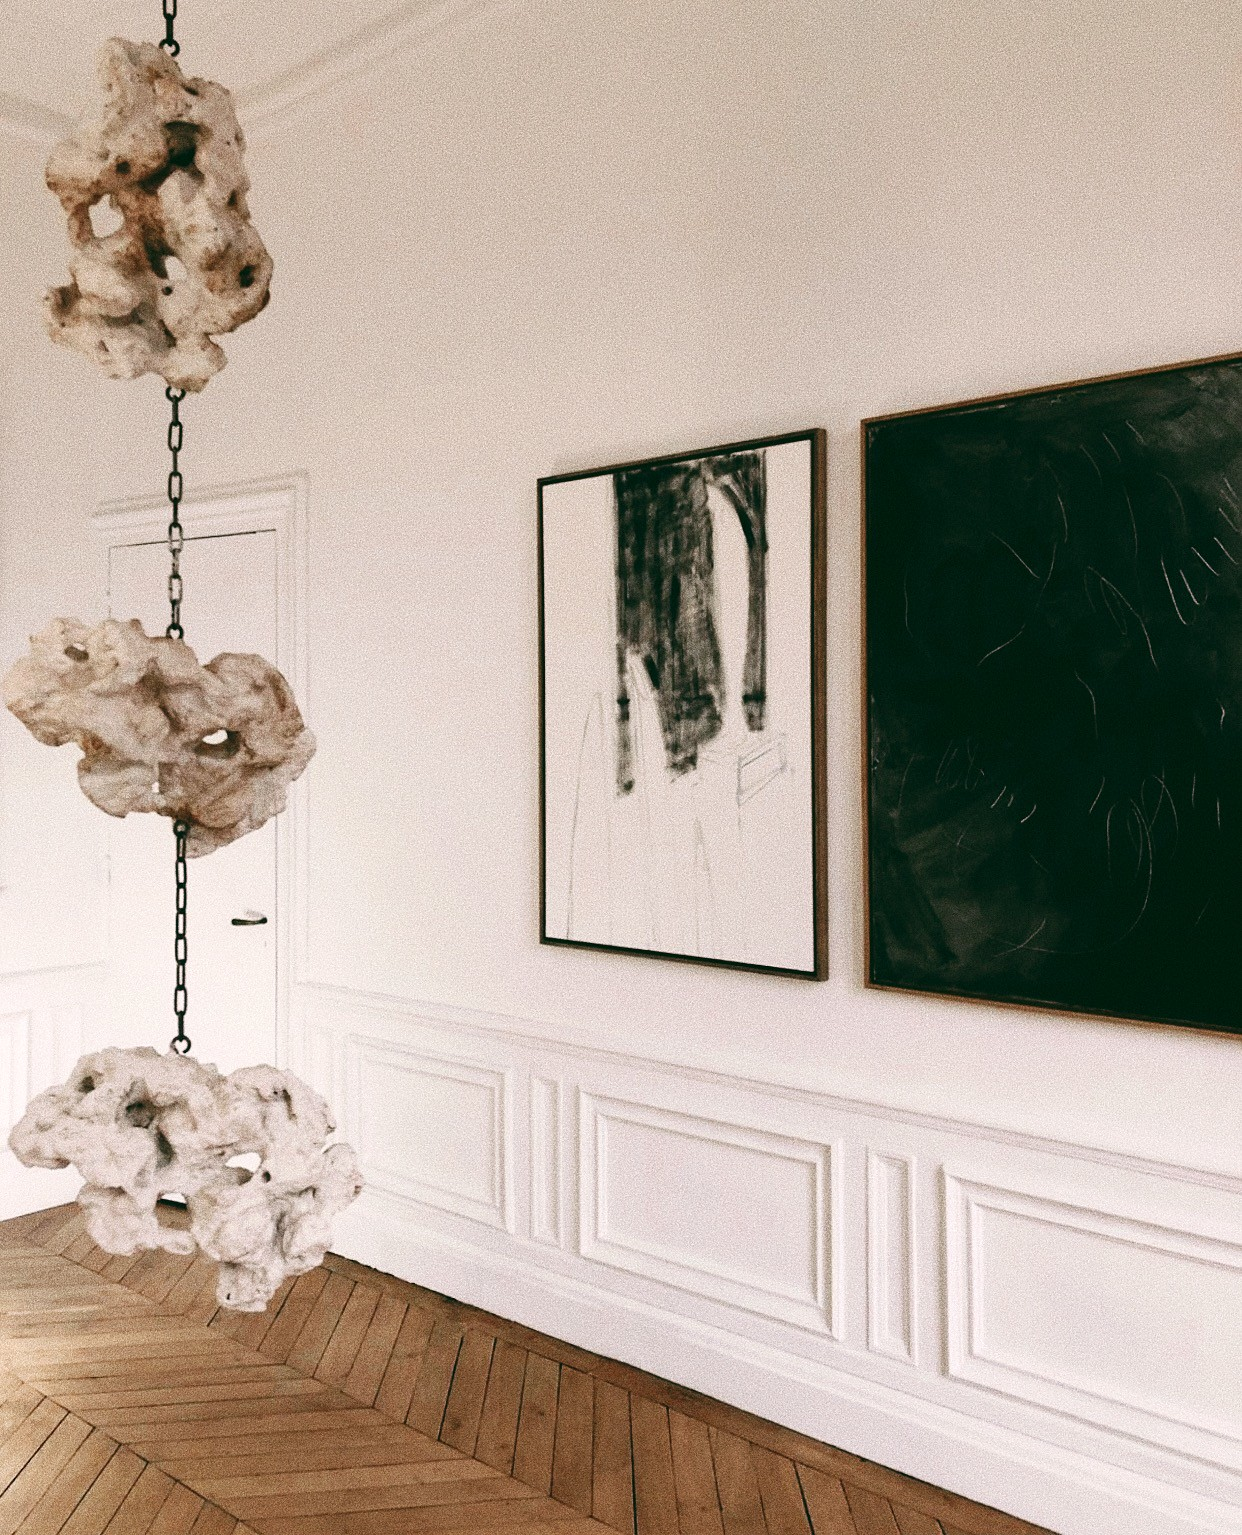 Arts & Culture | Shopping: Nadia Candet's Private Choice 2019, Paris